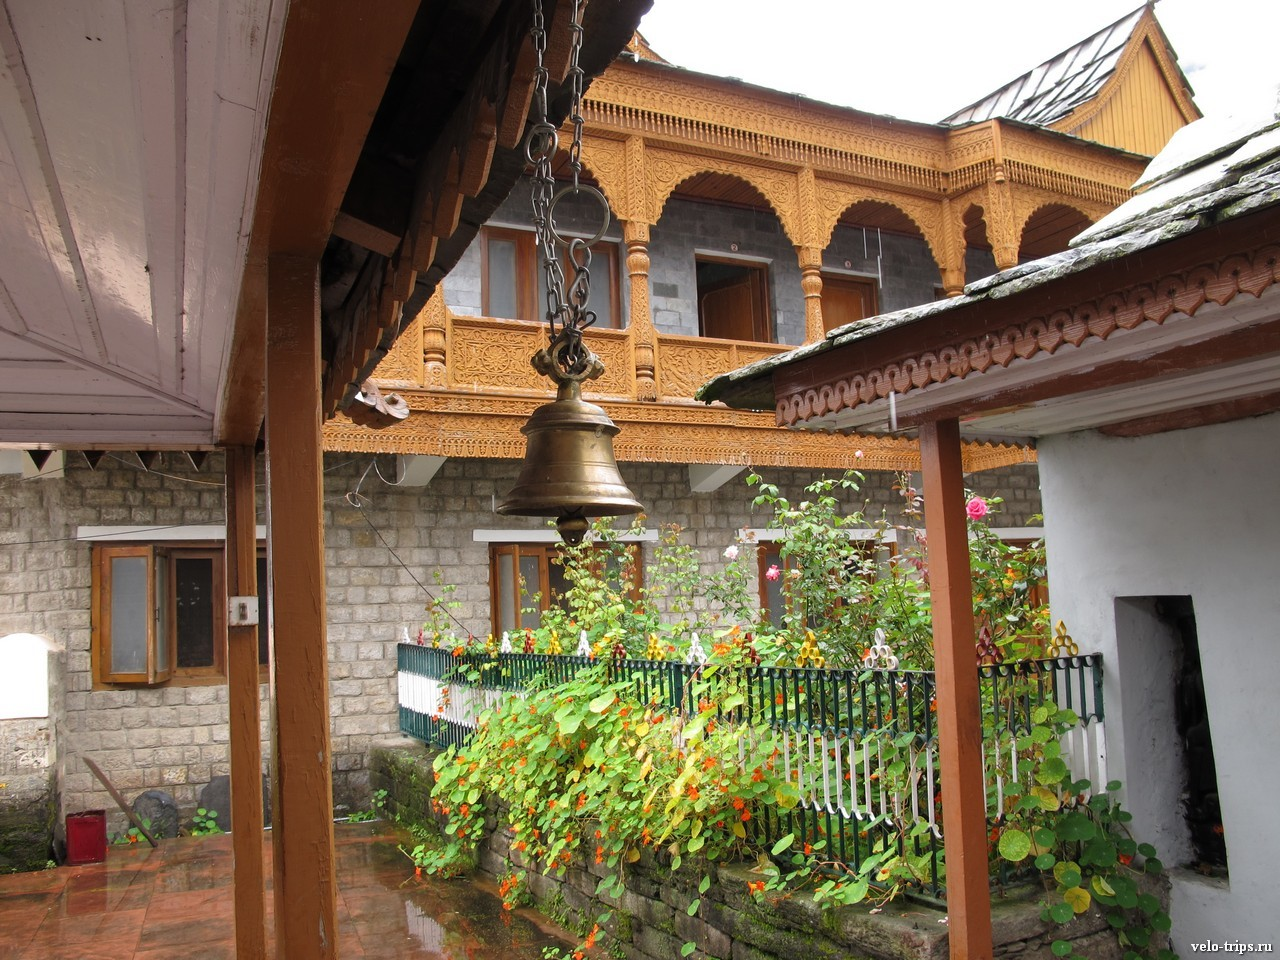 Bell and buildings in Sarahan, India